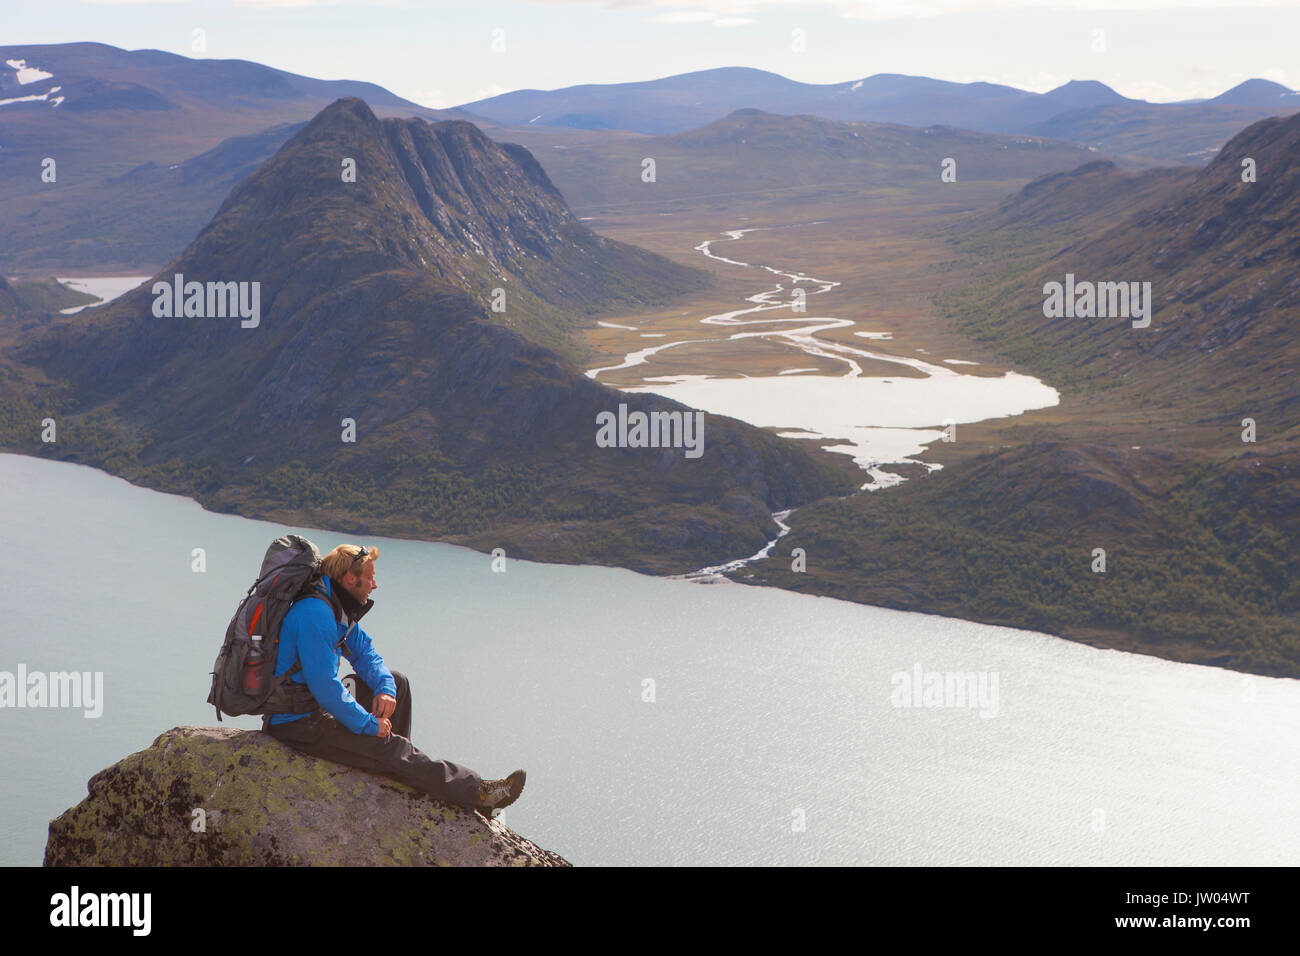 A hiker is enjoying the view over fjords and mountains while sitting on a rock of the famous Besseggen ridge in Norway. This one day traverse in Jotunheimen National Park is the most popular hike in Norway. - Stock Image